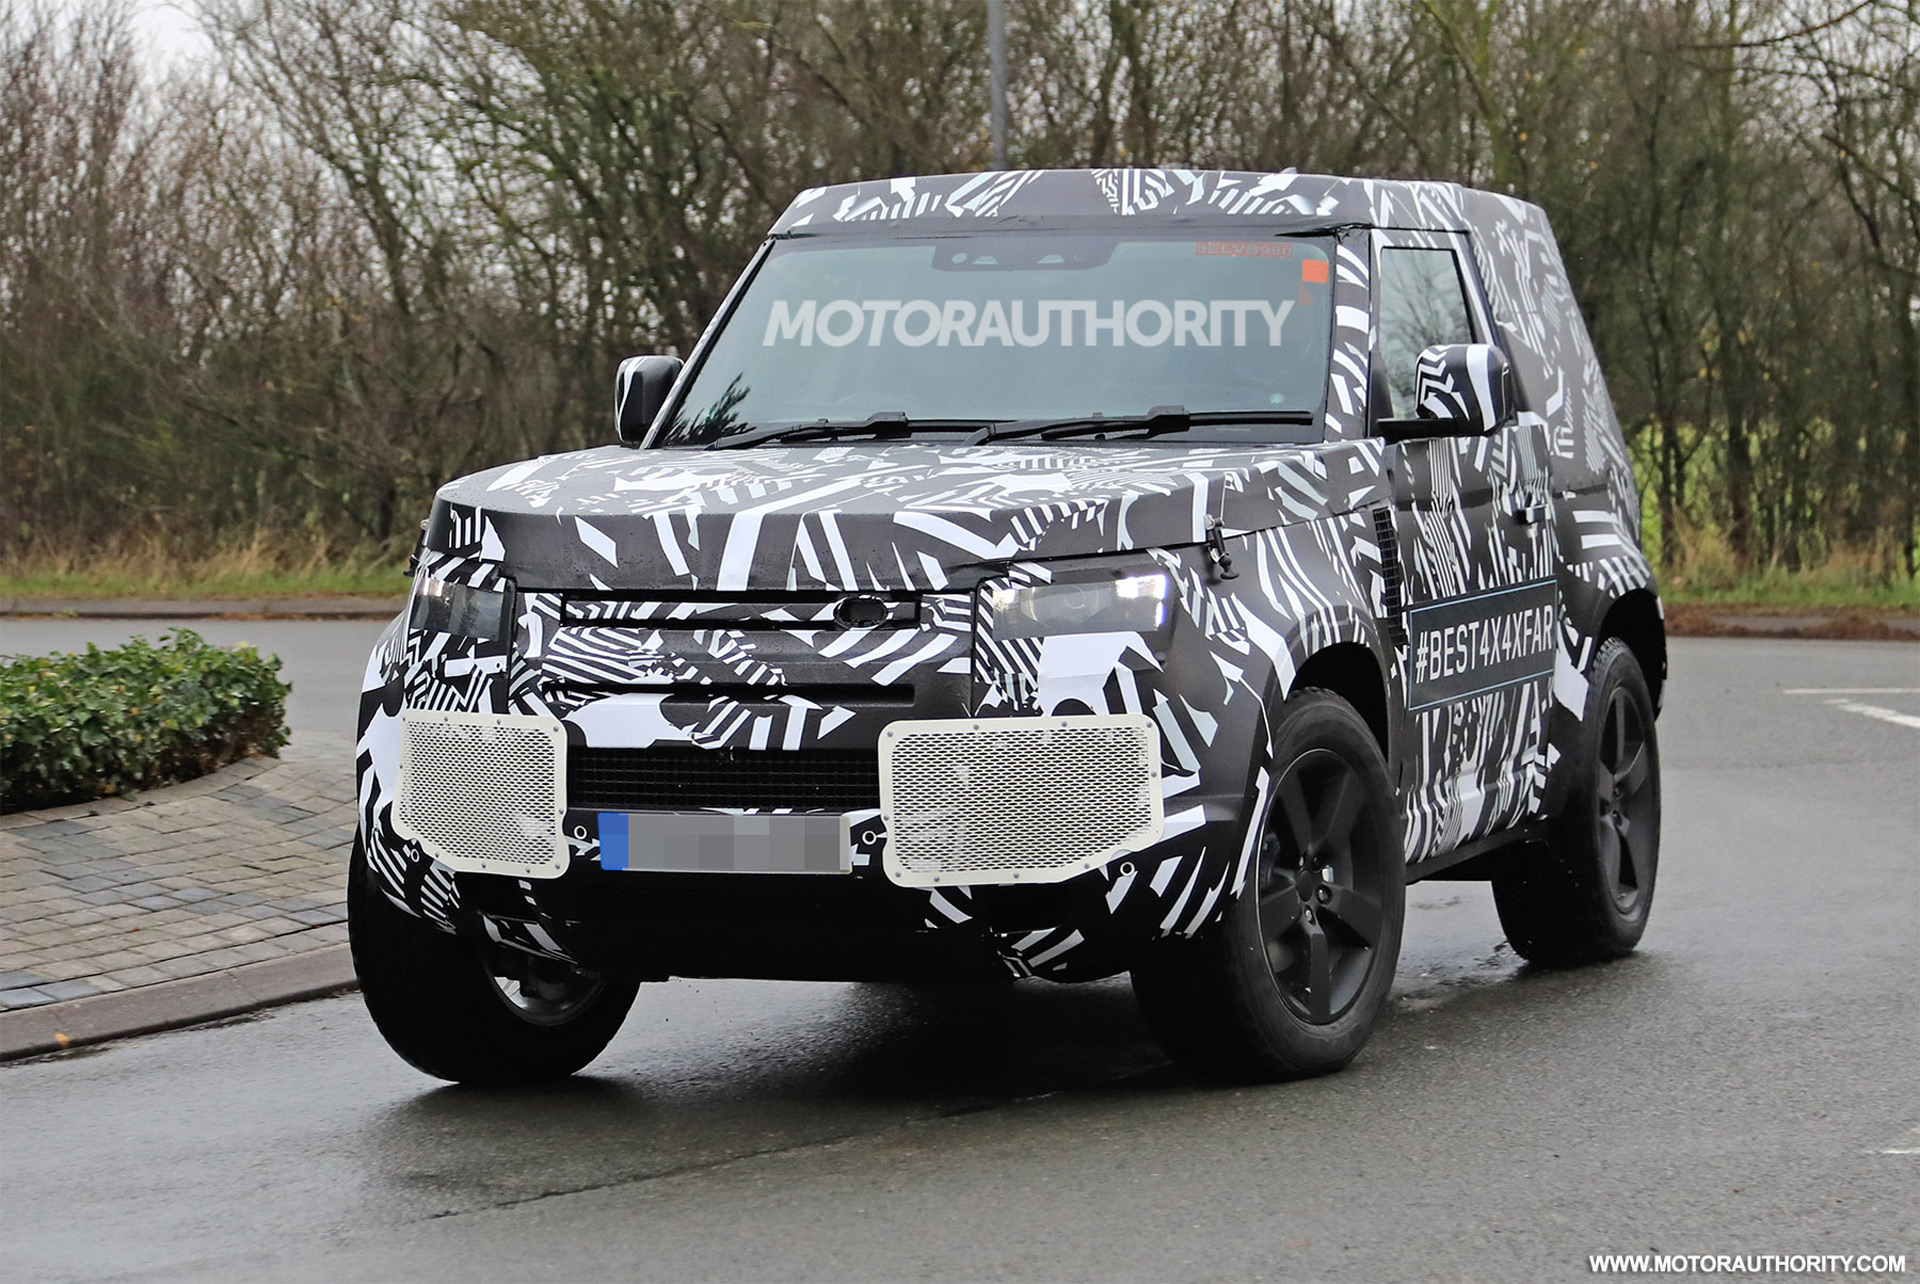 2021 Land Rover Defender 3-door spy shots